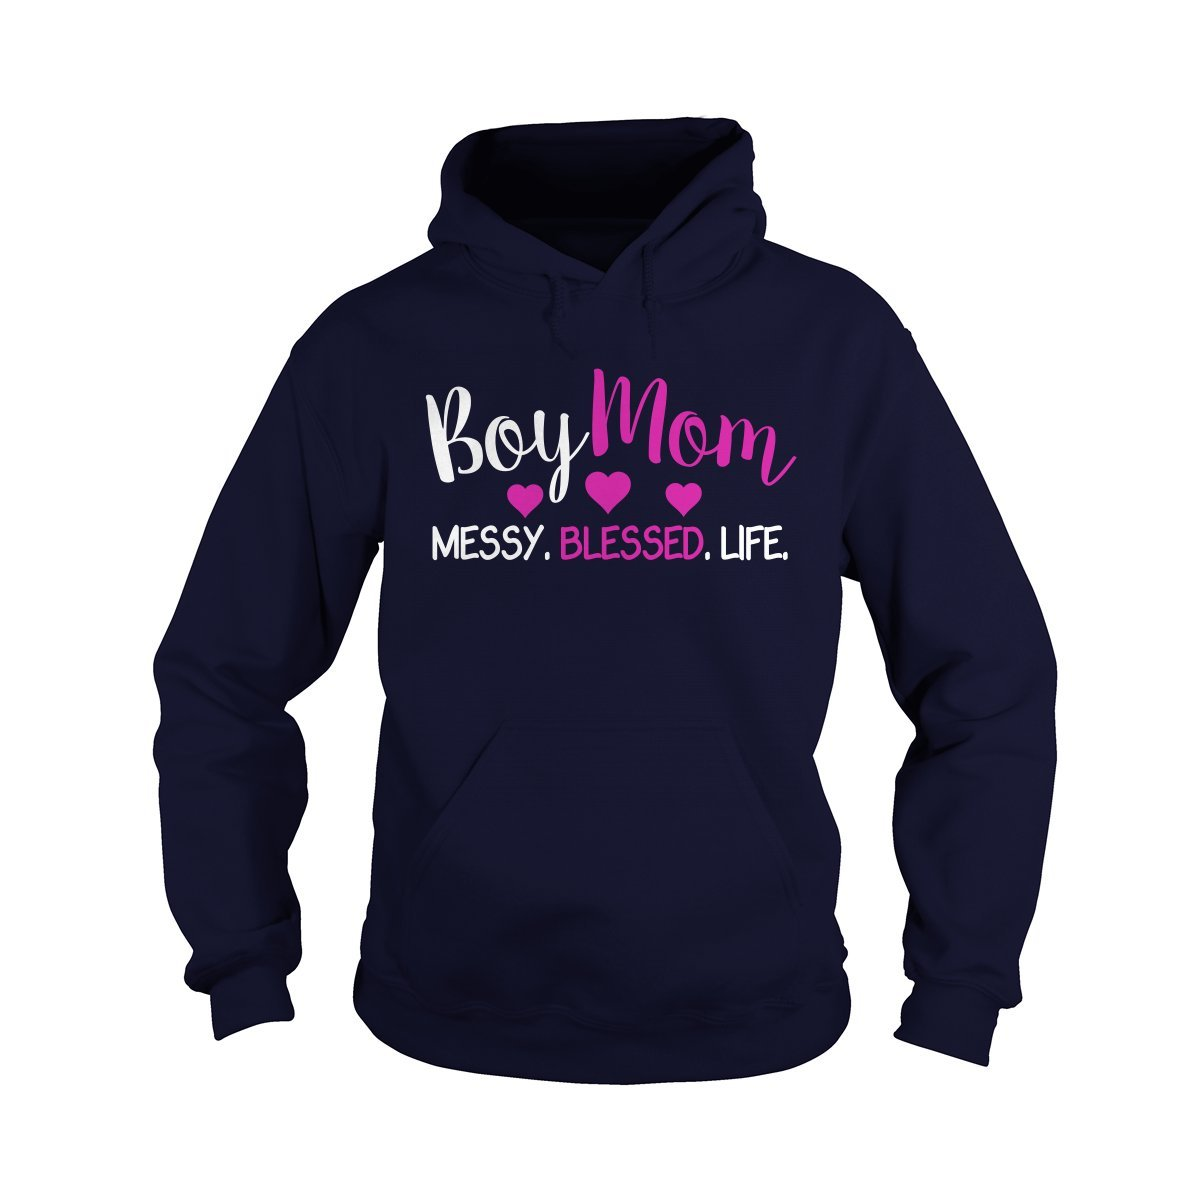 Hoodie Navy blueee XLarge Boy mom Messy Blessed Life TShirt